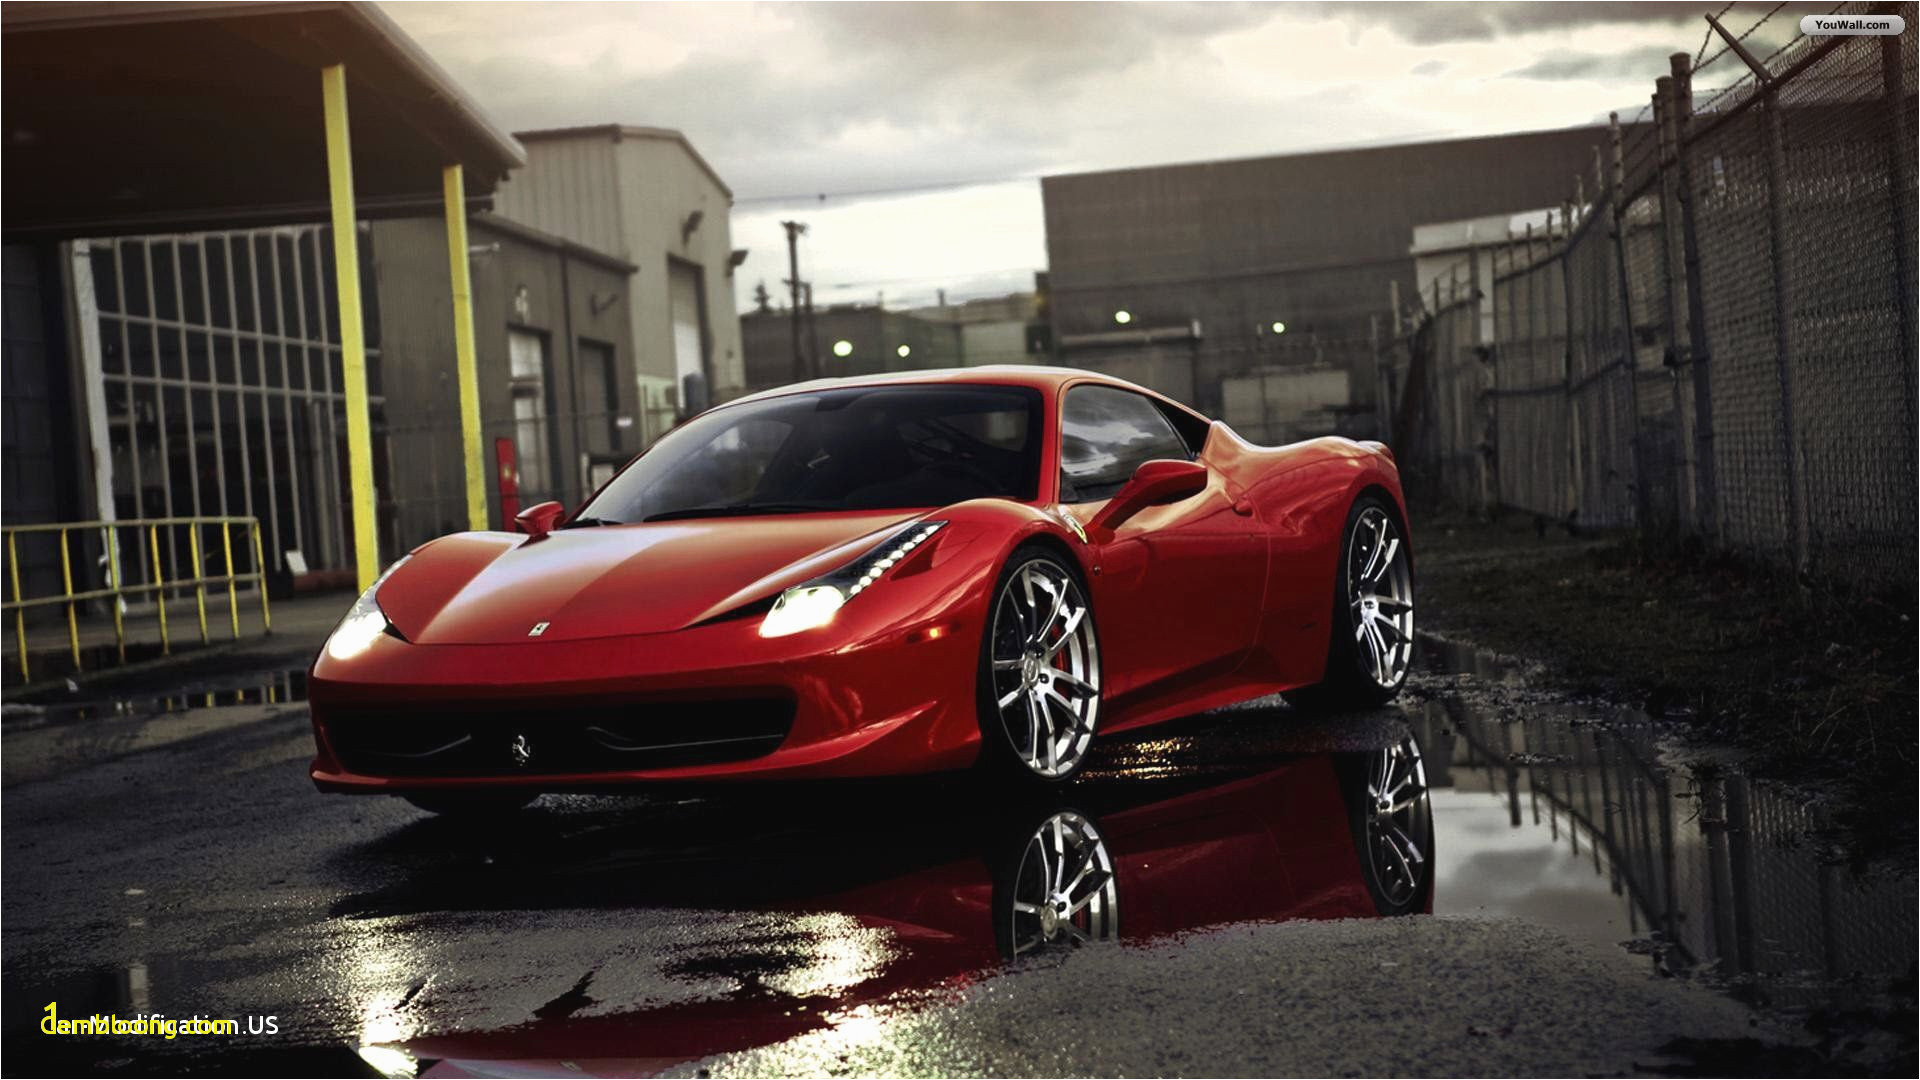 New Ferrari 458 Cars Wallpapers android